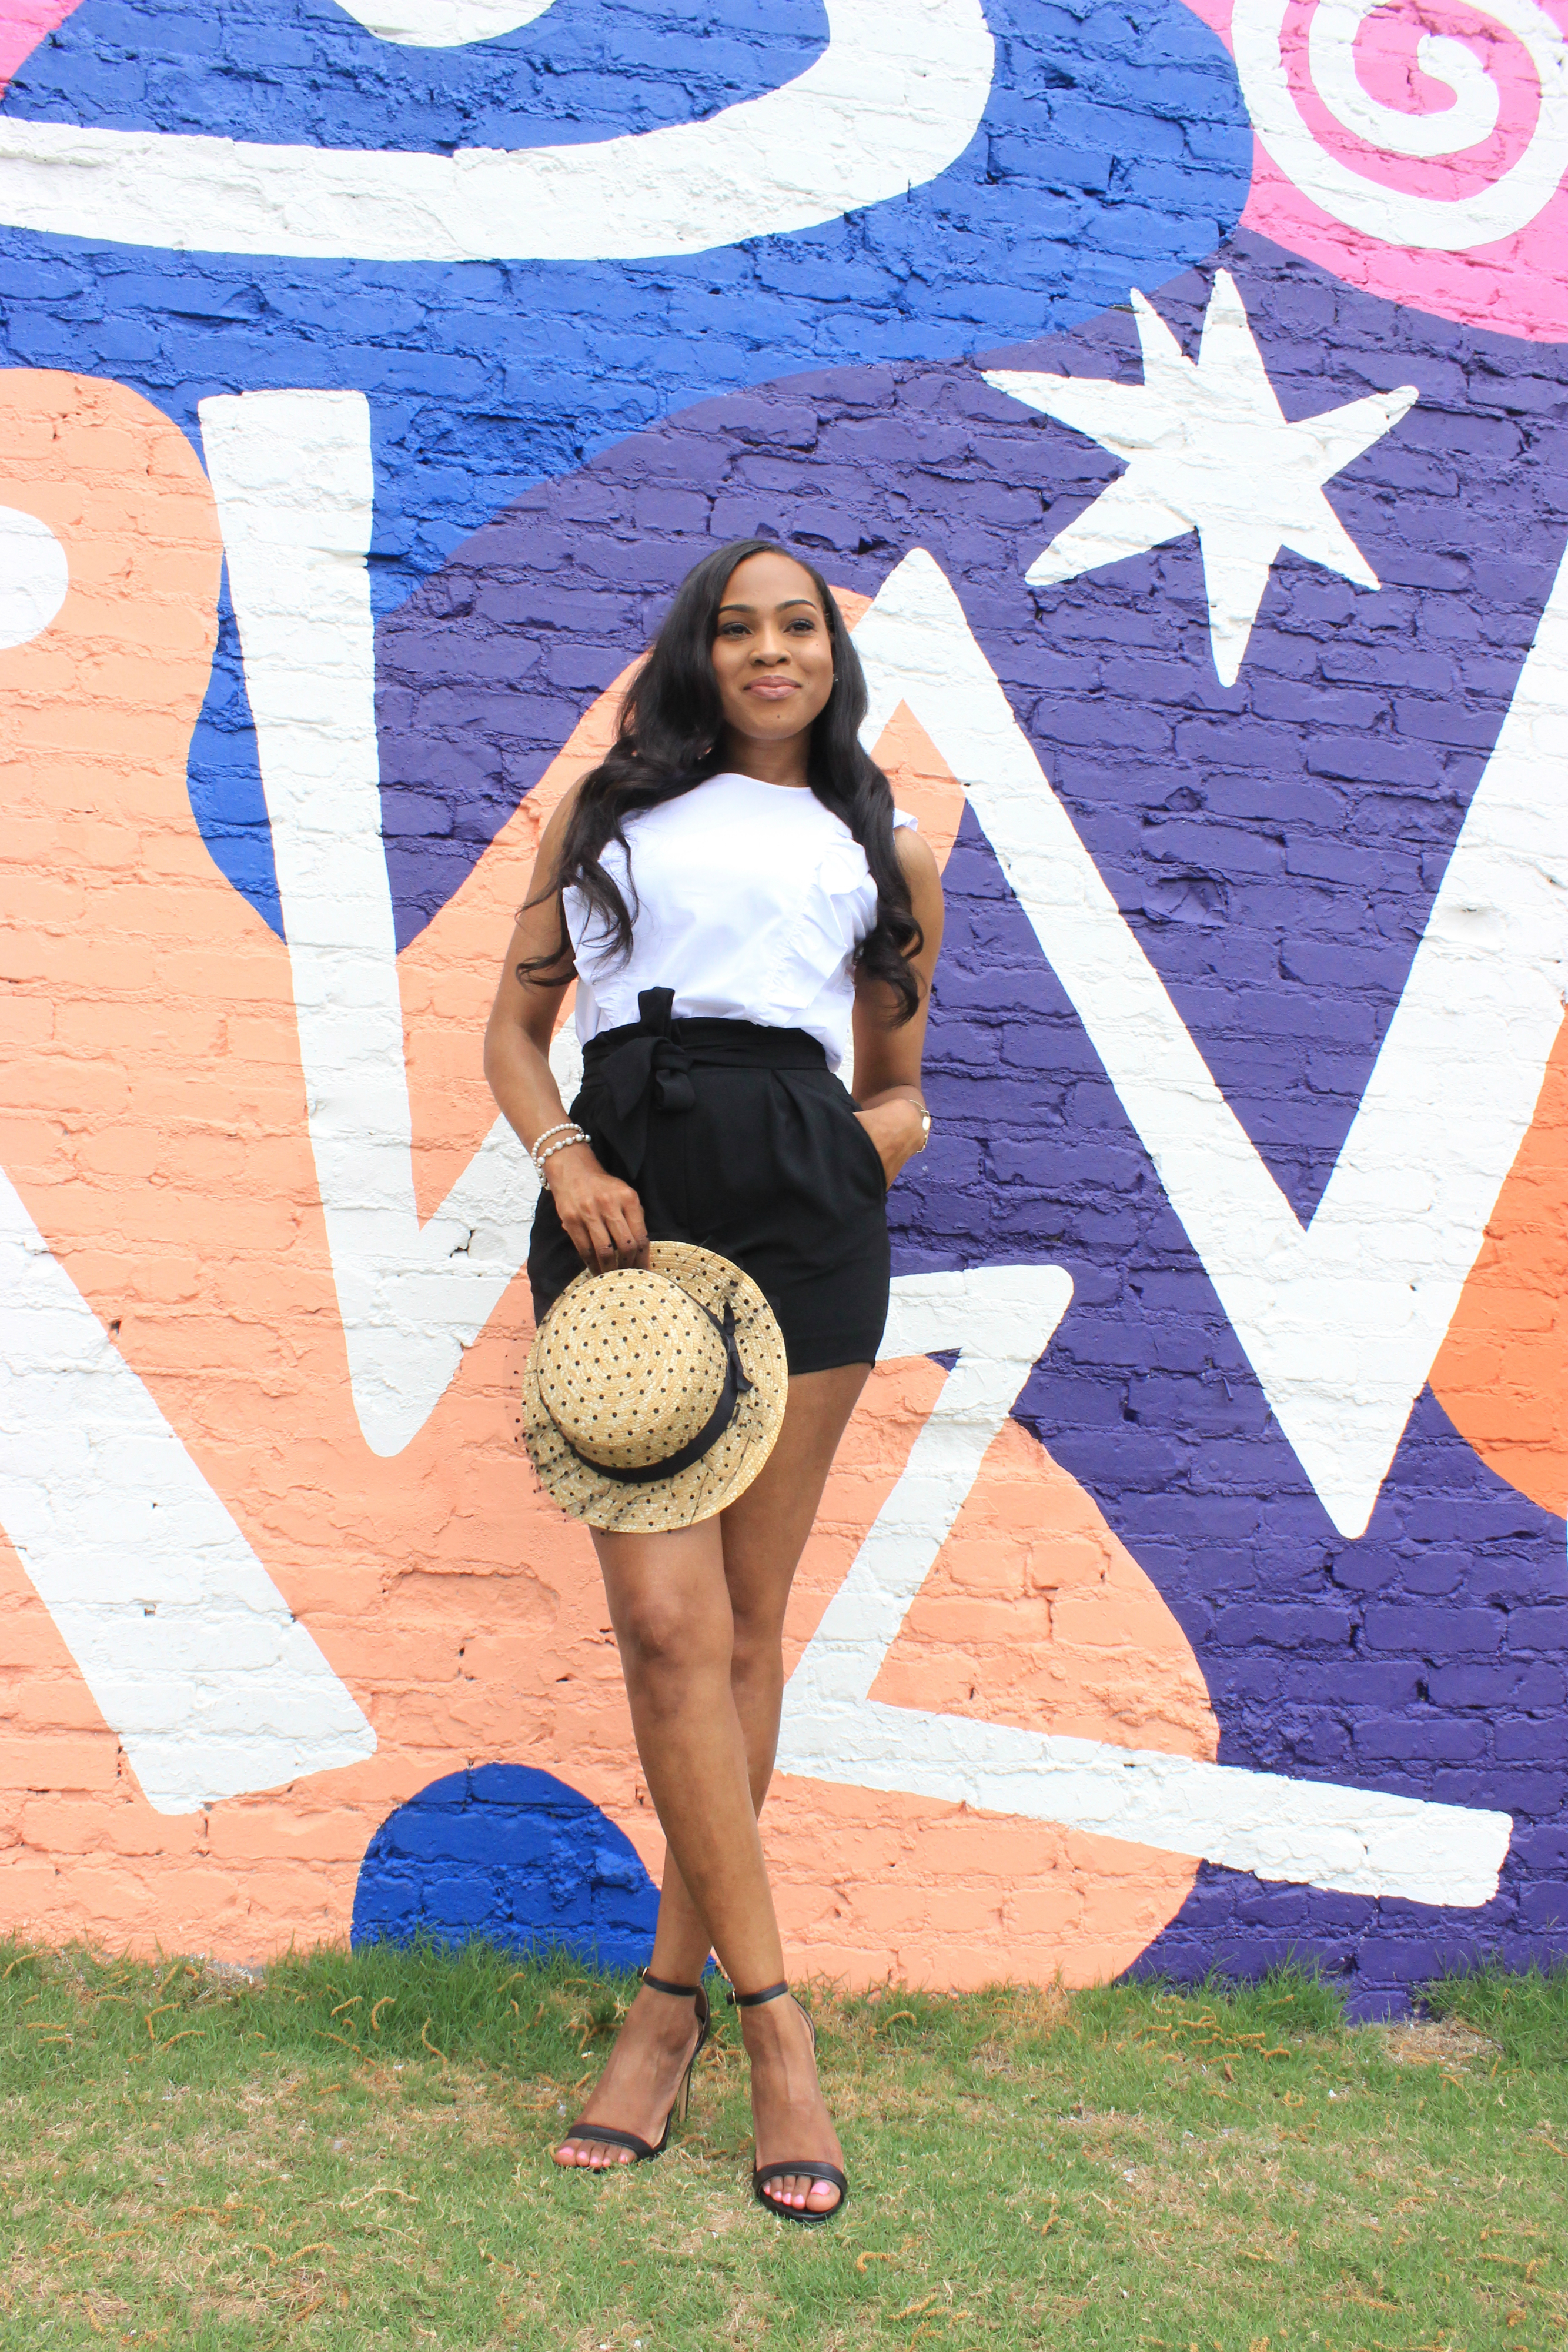 style-files-Michael kors white ruffle sleeveless top-HM-tie-front-black-shorts-amazon- polka -dot straw-hat-justfab-black-ankle-strap-sandals-birmingham-top-bloggers-oohlalablog-3